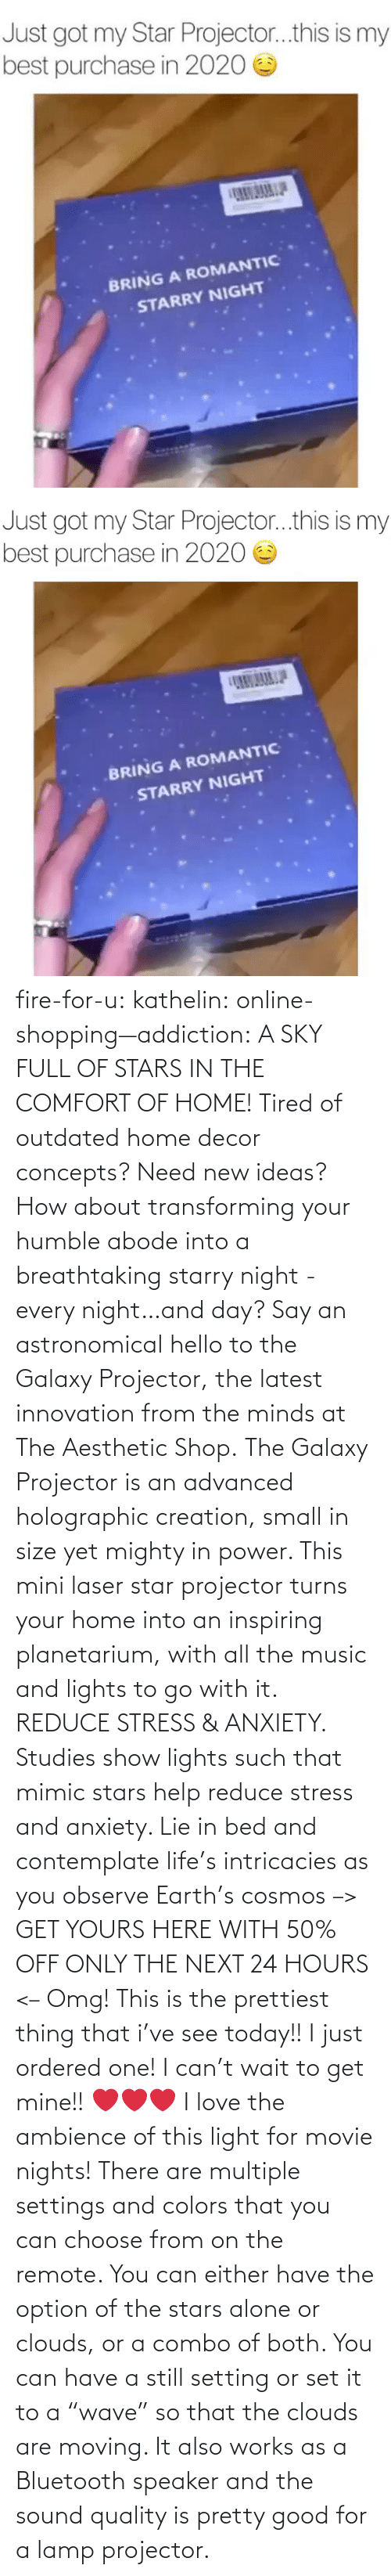 "gif: fire-for-u:  kathelin: online-shopping—addiction:  A SKY FULL OF STARS IN THE COMFORT OF HOME! Tired of outdated home decor concepts? Need new ideas? How about transforming your humble abode into a breathtaking starry night - every night…and day? Say an astronomical hello to the Galaxy Projector, the latest innovation from the minds at The Aesthetic Shop. The Galaxy Projector is an advanced holographic creation, small in size yet mighty in power. This mini laser star projector turns your home into an inspiring planetarium, with all the music and lights to go with it. REDUCE STRESS & ANXIETY. Studies show lights such that mimic stars help reduce stress and anxiety. Lie in bed and contemplate life's intricacies as you observe Earth's cosmos  –> GET YOURS HERE WITH 50% OFF ONLY THE NEXT 24 HOURS <–   Omg! This is the prettiest thing that i've see today!! I just ordered one! I can't wait to get mine!! ❤️️❤️️❤️️  I love the ambience of this light for movie nights! There are multiple settings and colors that you can choose from on the remote. You can either have the option of the stars alone or clouds, or a combo of both. You can have a still setting or set it to a ""wave"" so that the clouds are moving. It also works as a Bluetooth speaker and the sound quality is pretty good for a lamp projector."